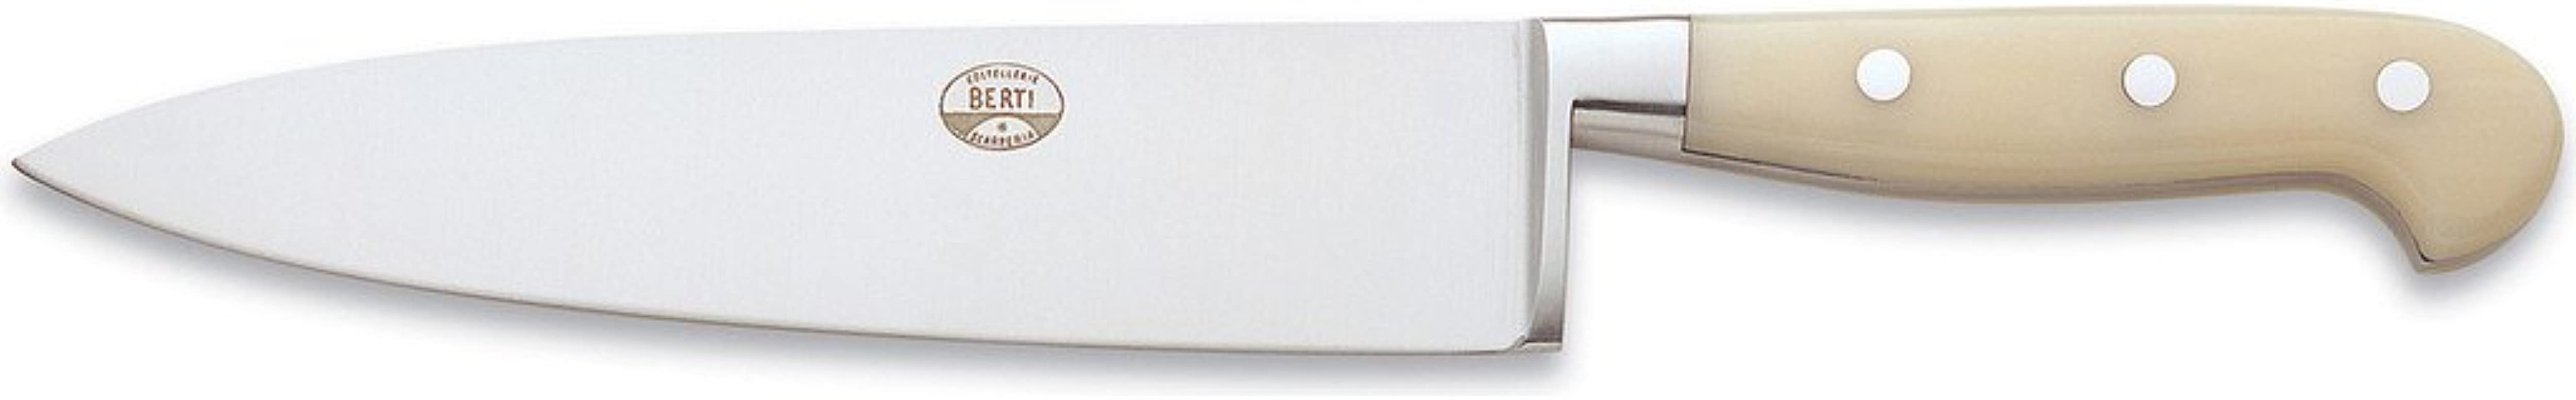 Coltellerie Berti 8 Chef S Knife Ivory Lucite Handle